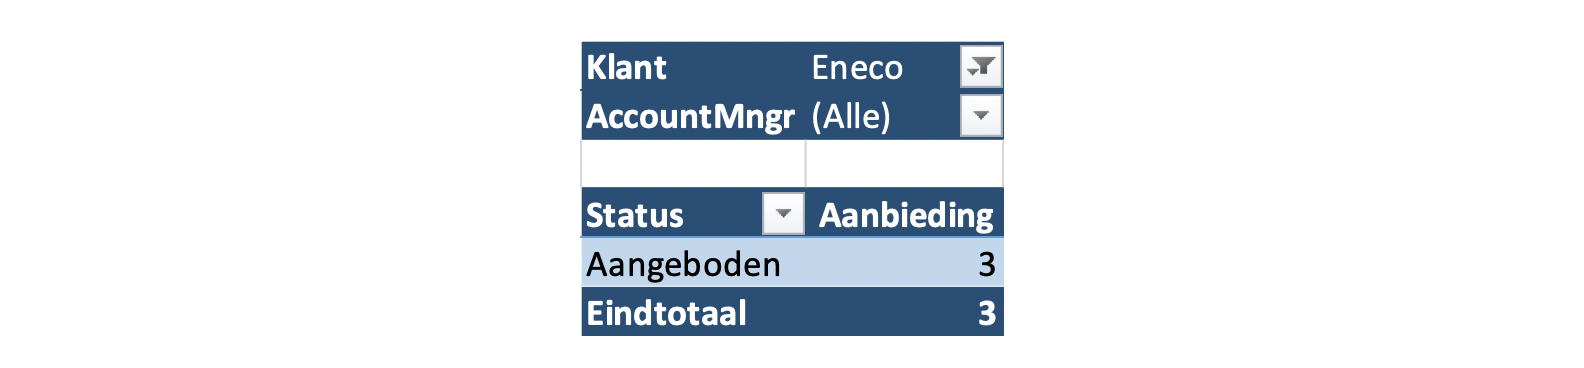 Tabel-06-Accountmanagers